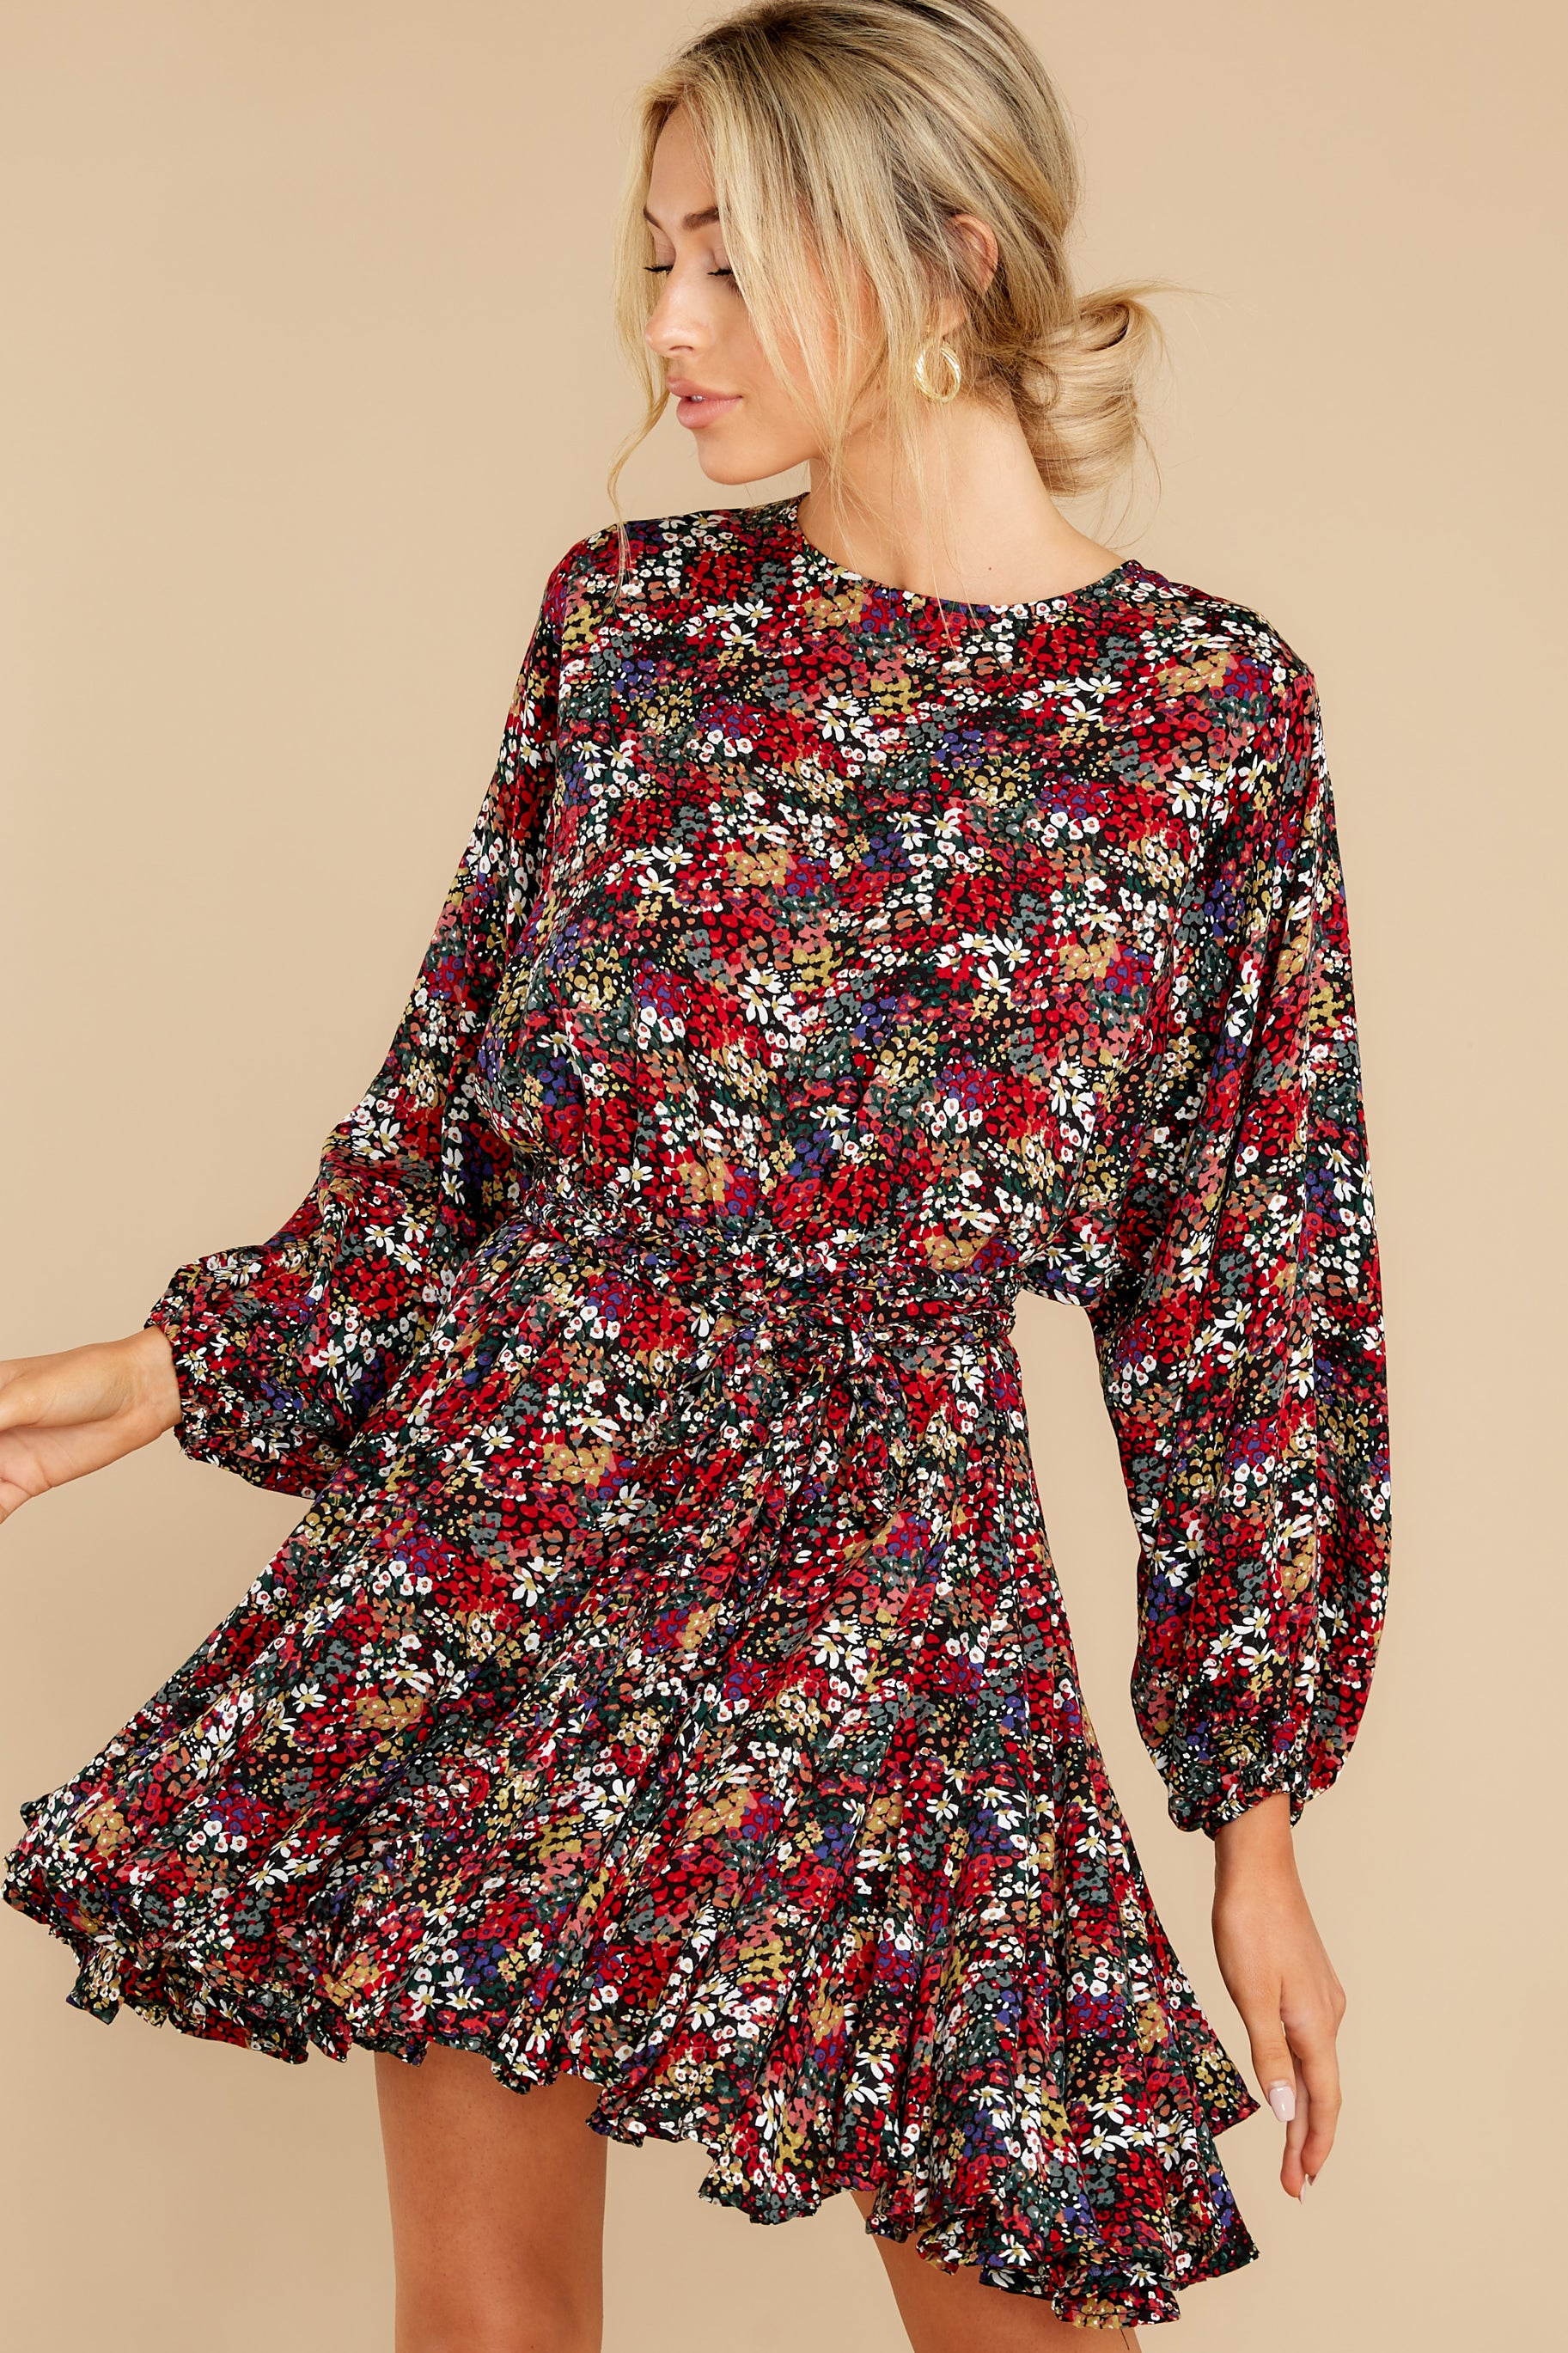 6 Here For You Black Floral Print Dress at reddress.com